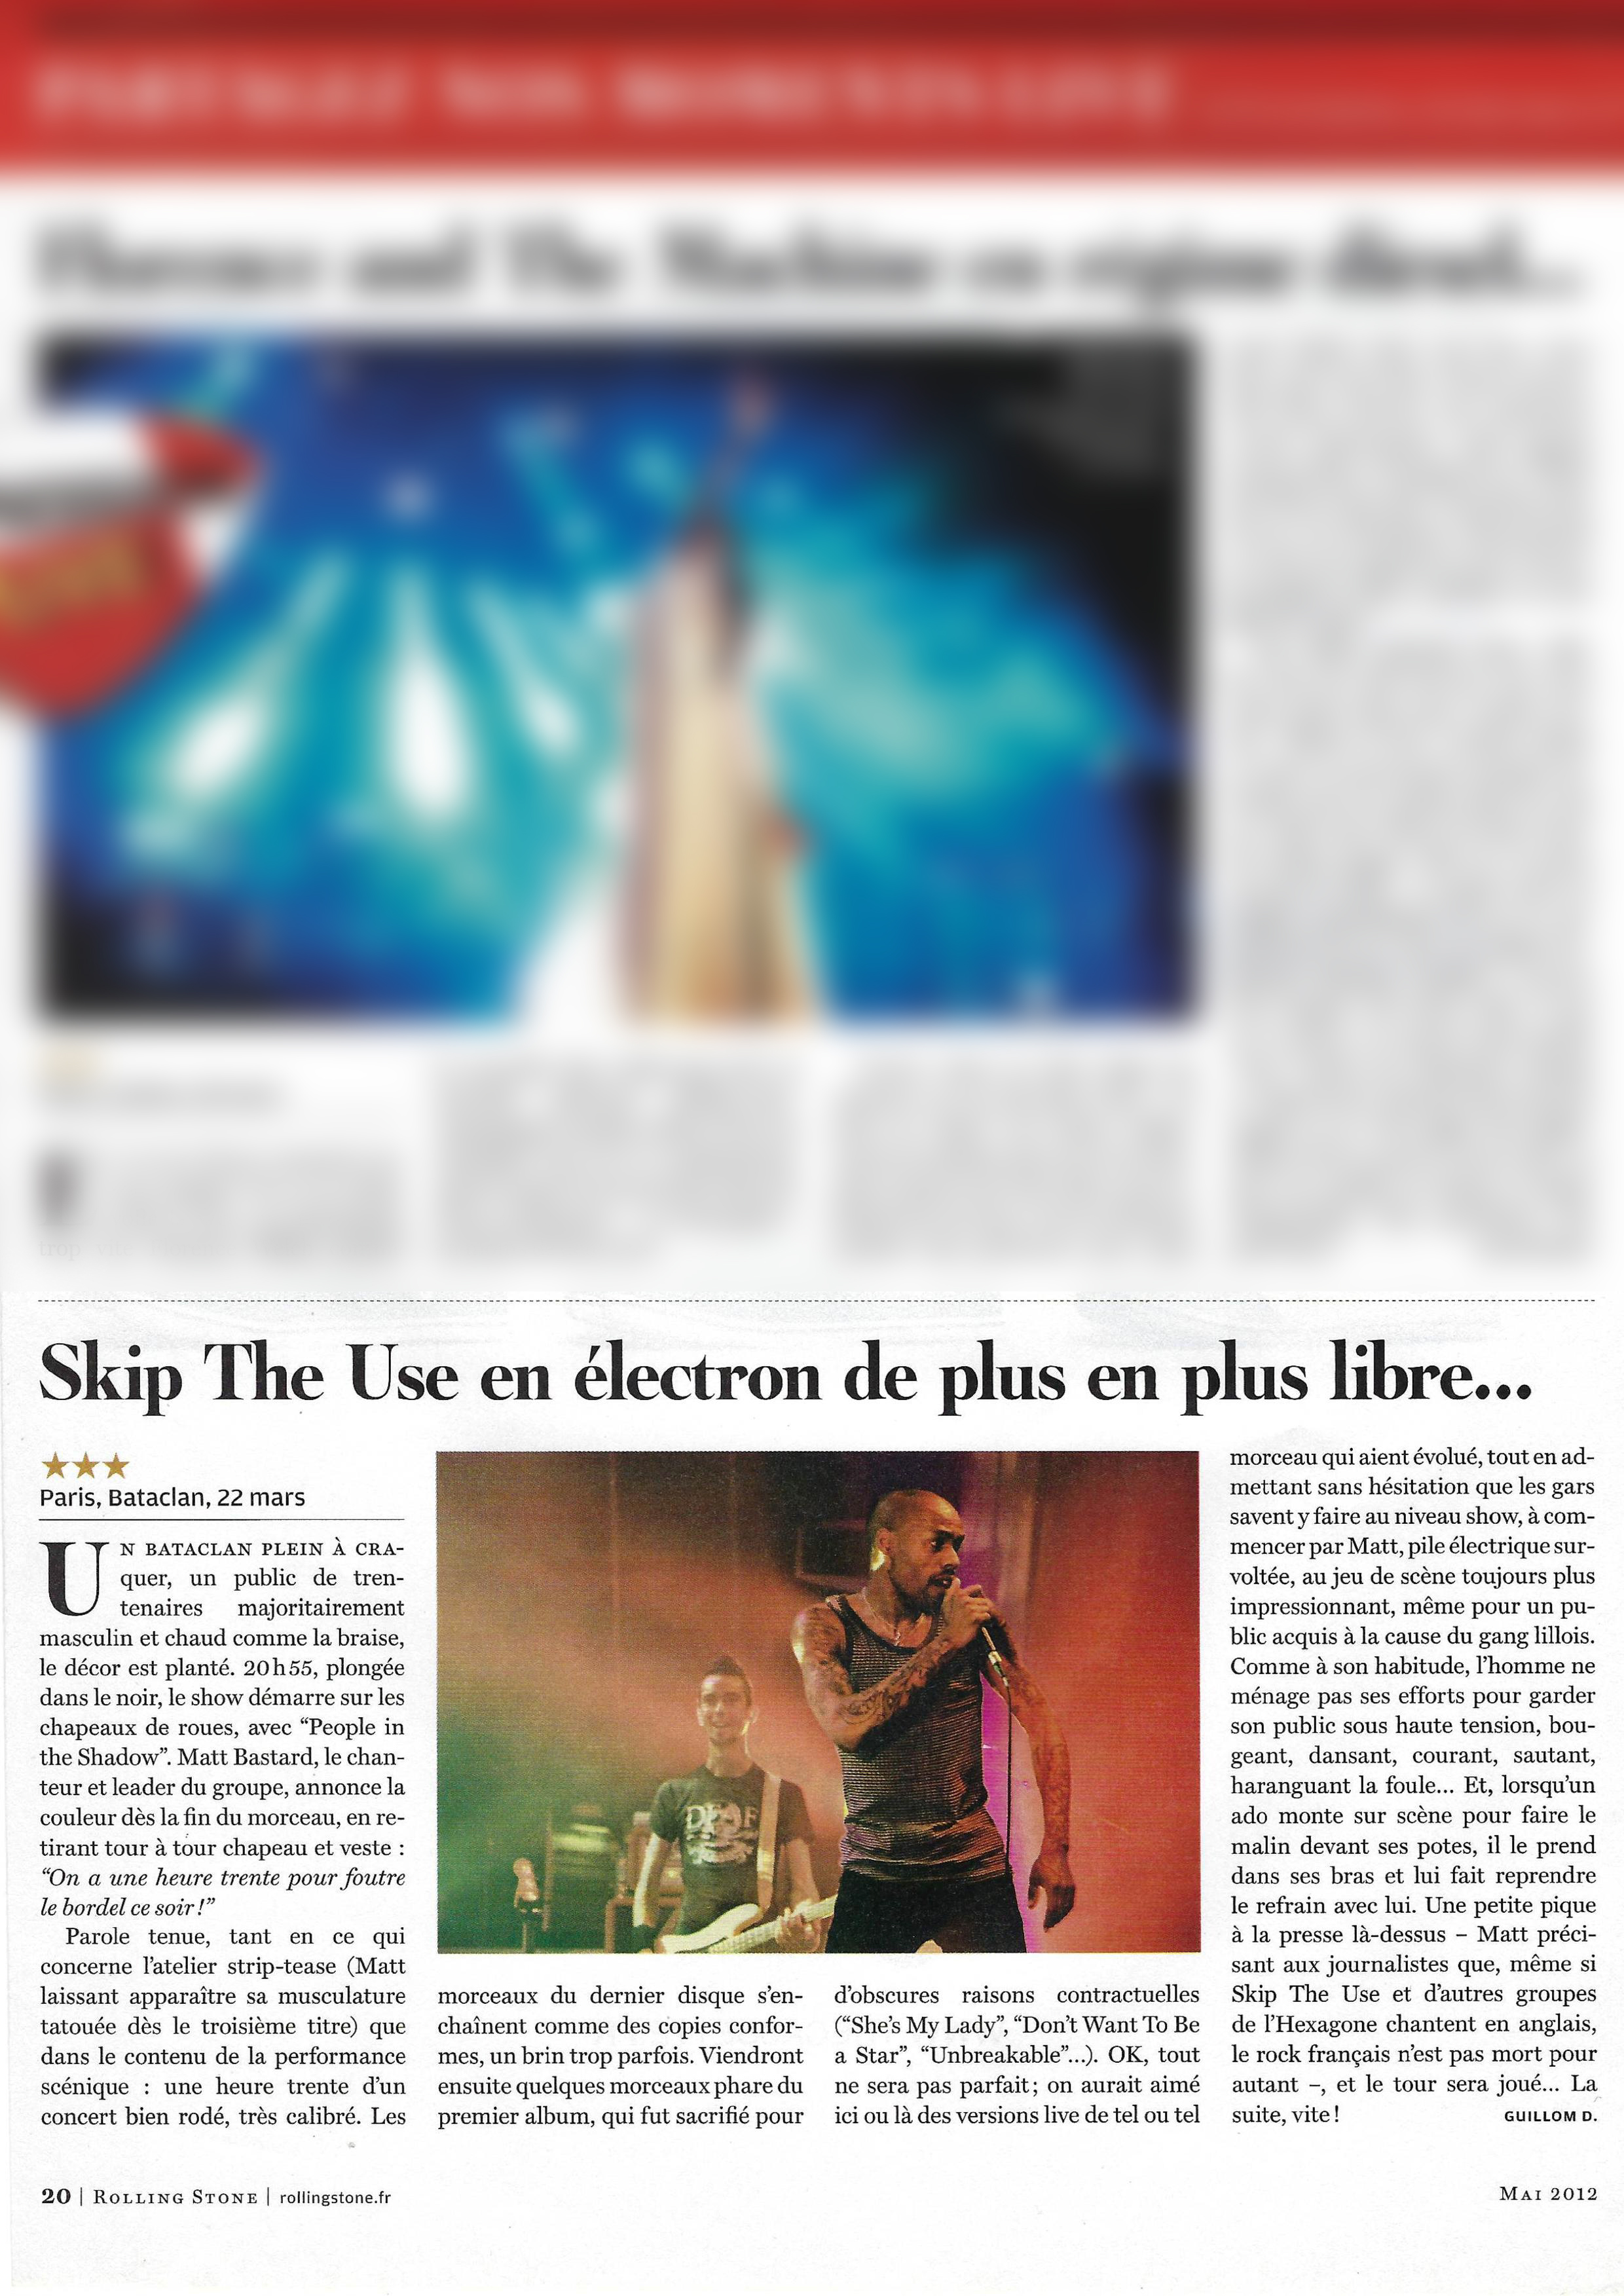 Skip The Use (Rolling Stone)